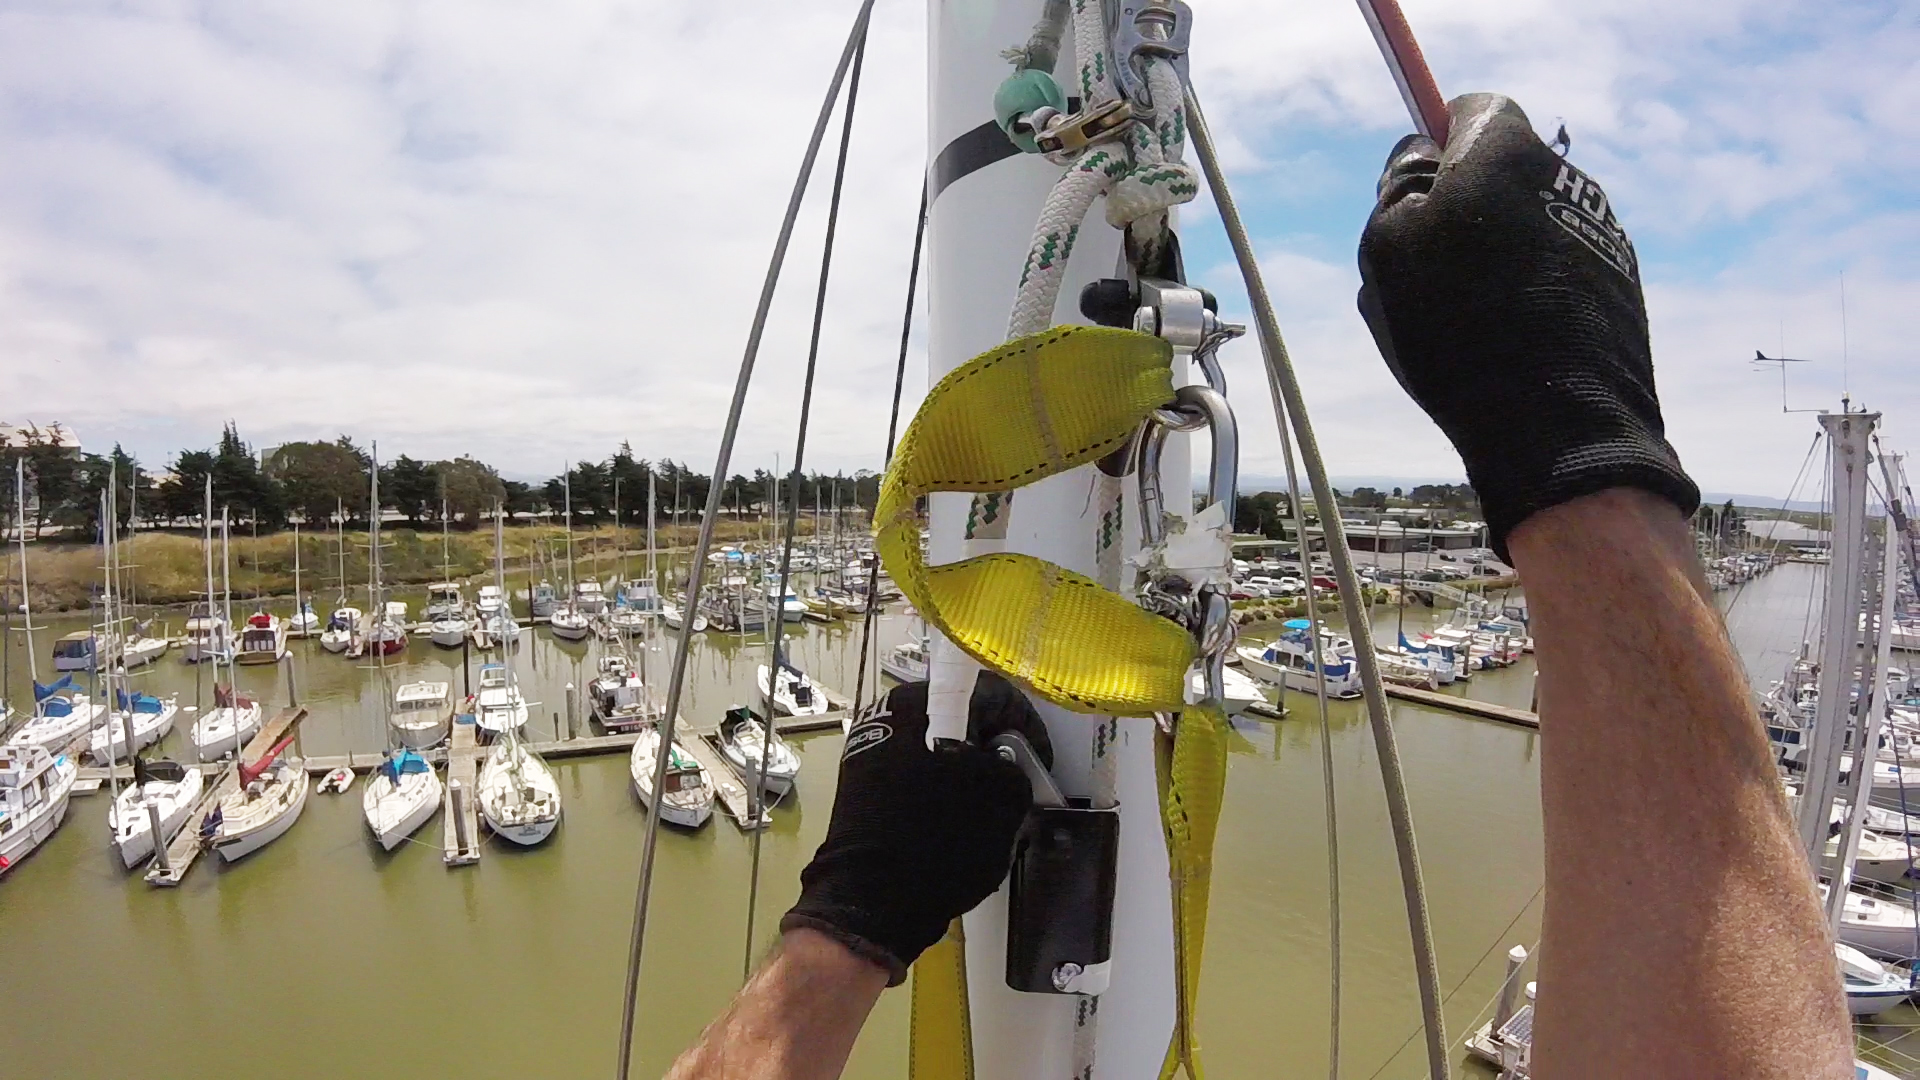 When you get to the top of the mast, you can connect a carabiner that's  part of the harness to the upper jammer to raise yourself to masthead level.